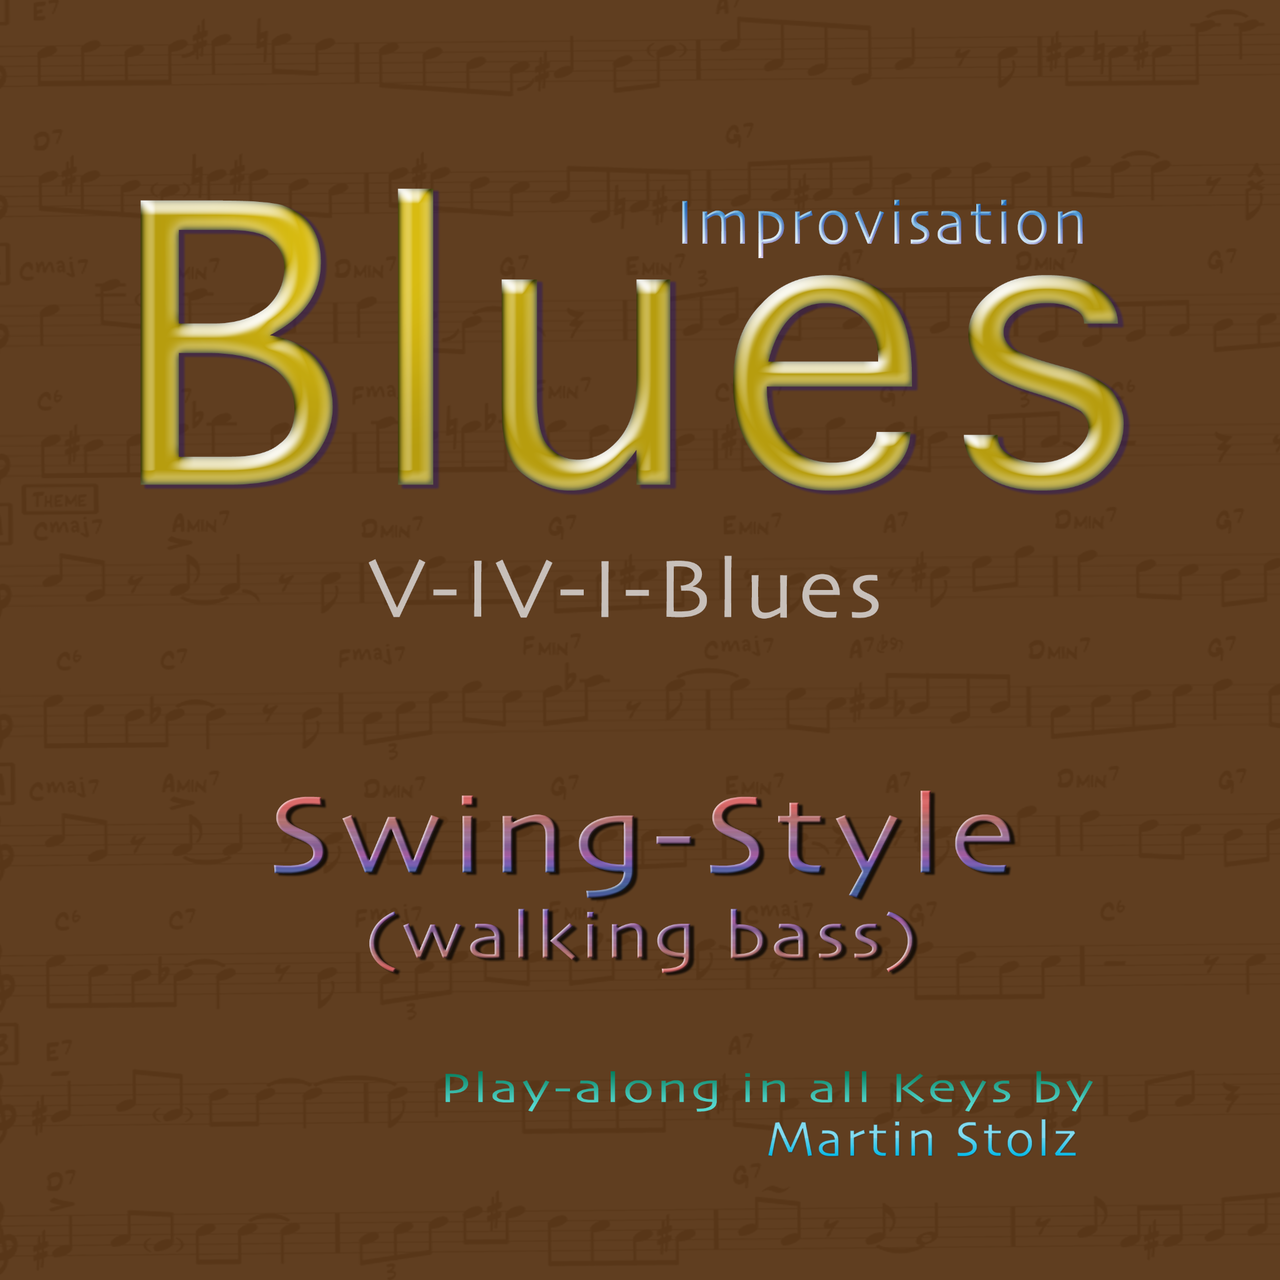 Blues play-along in swing style (walking bass) in all keys